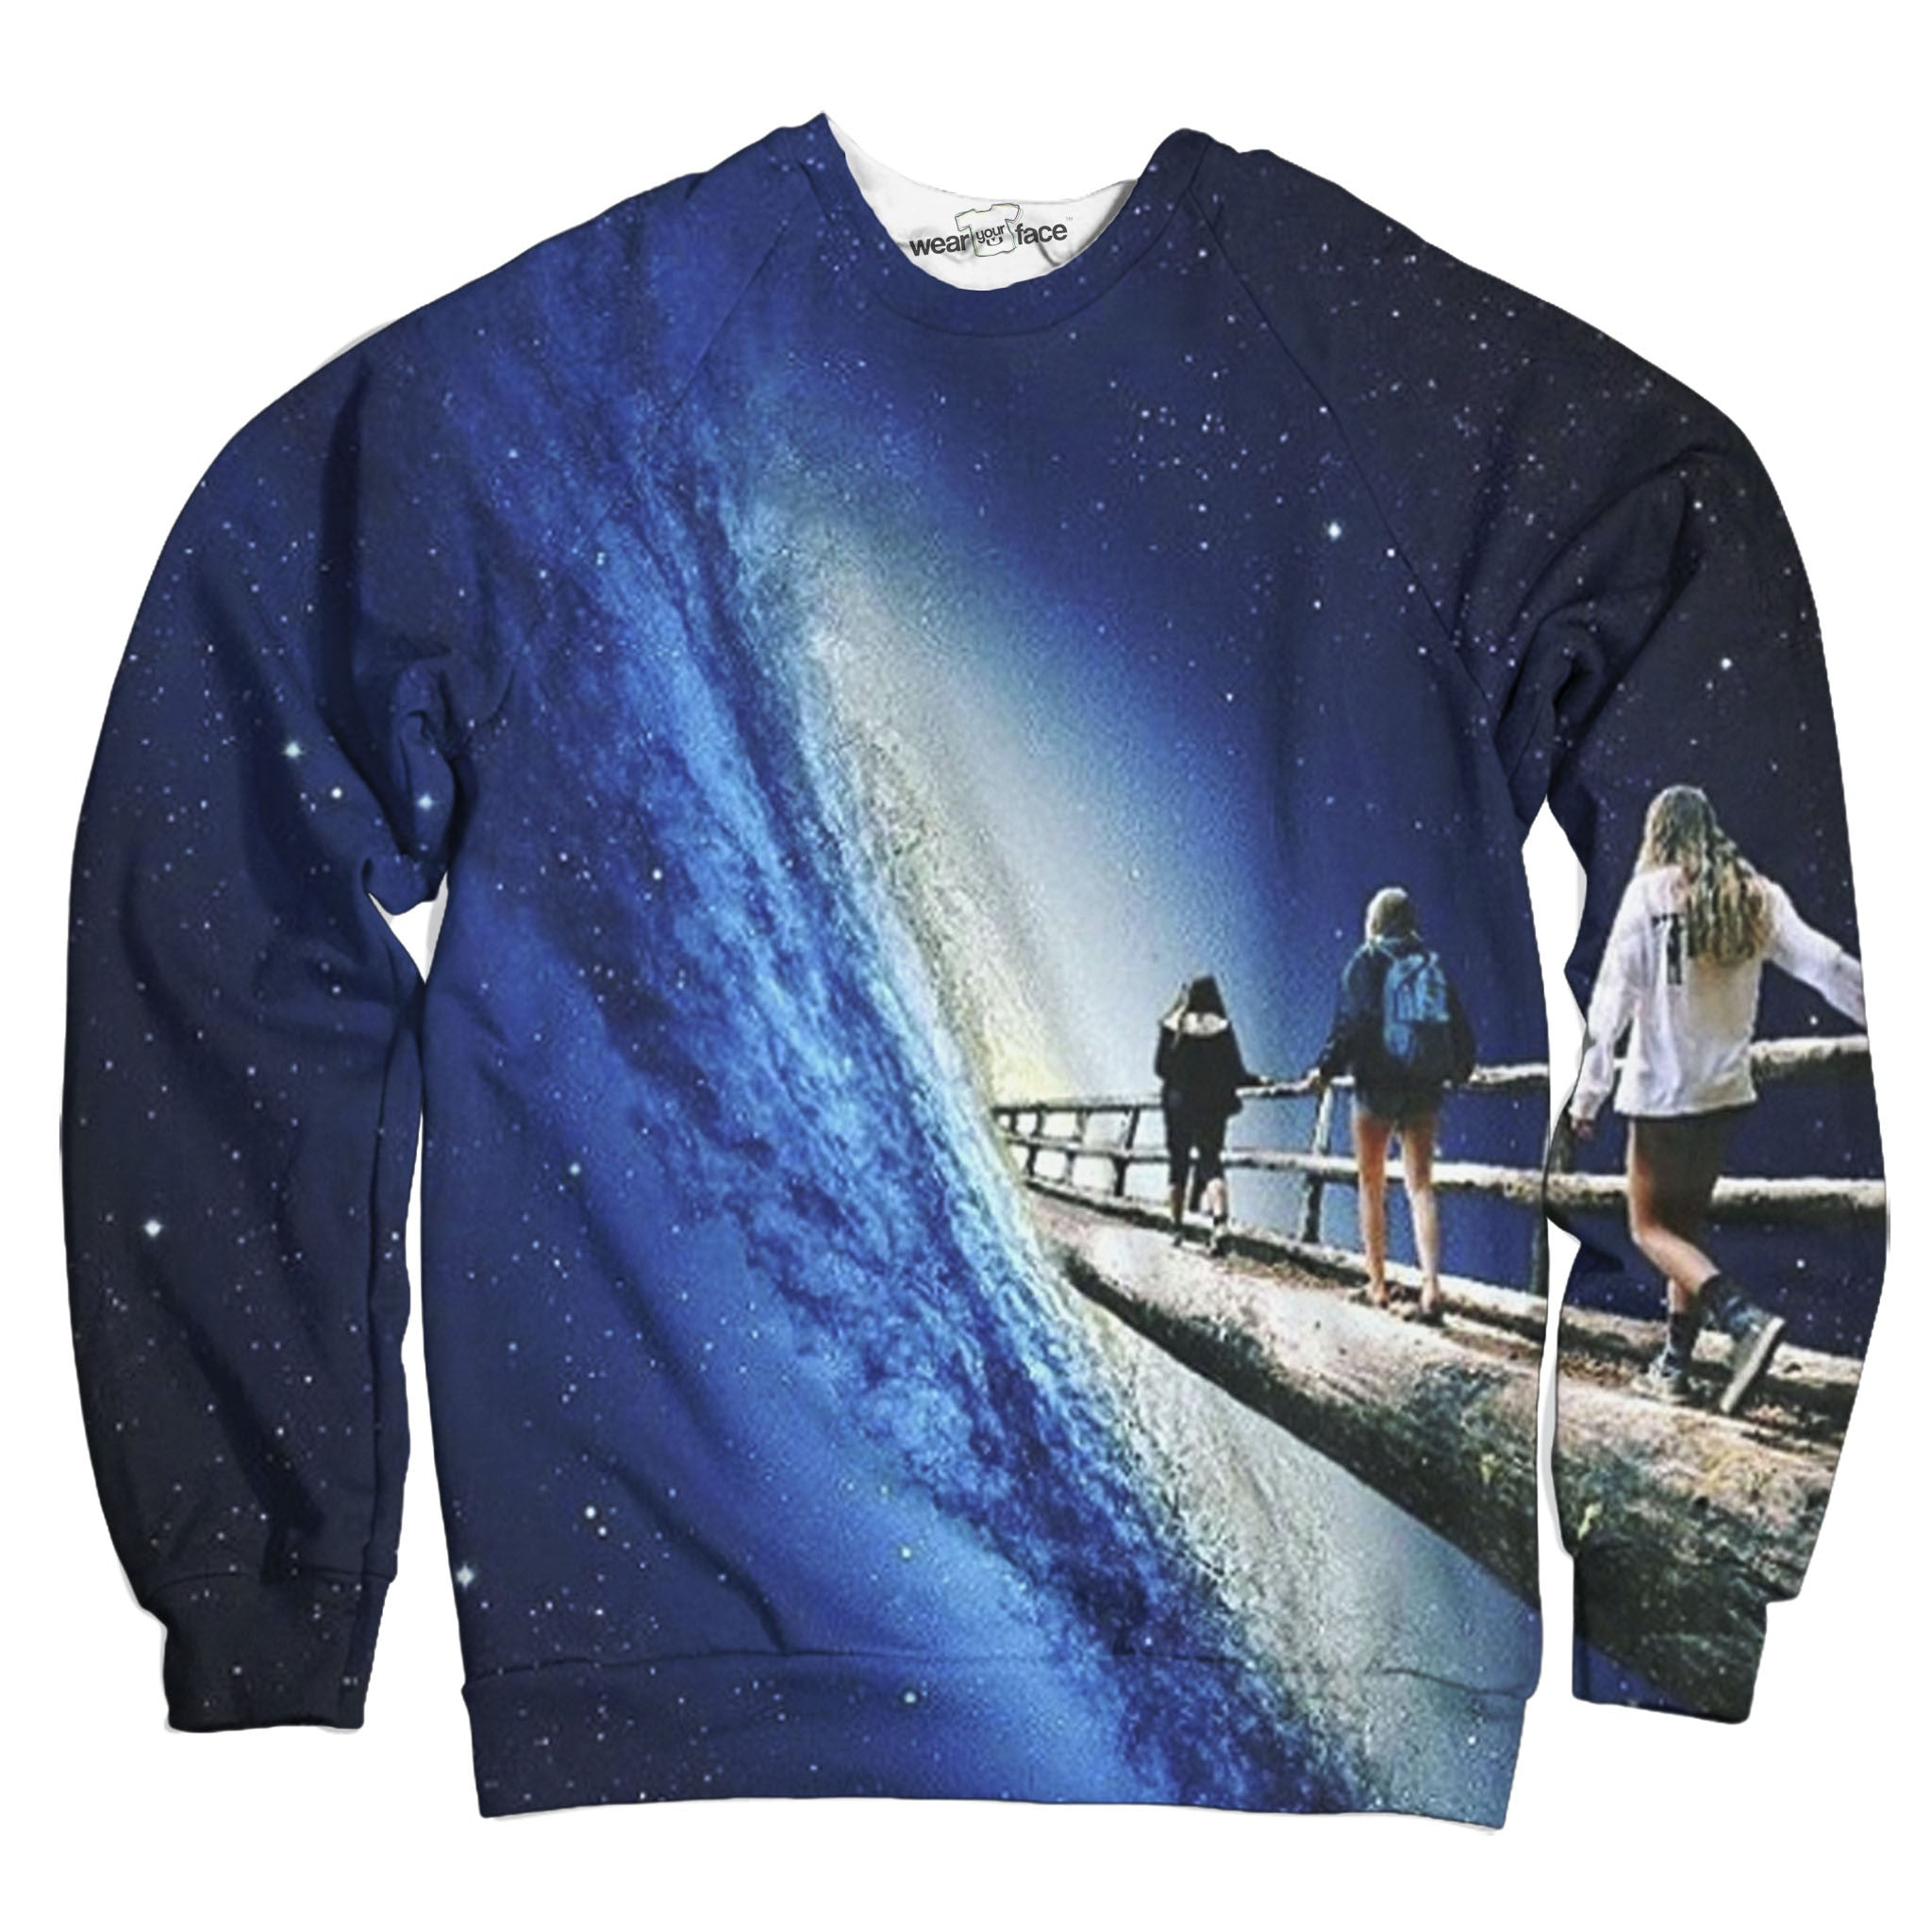 Just Another Walk Sweatshirt